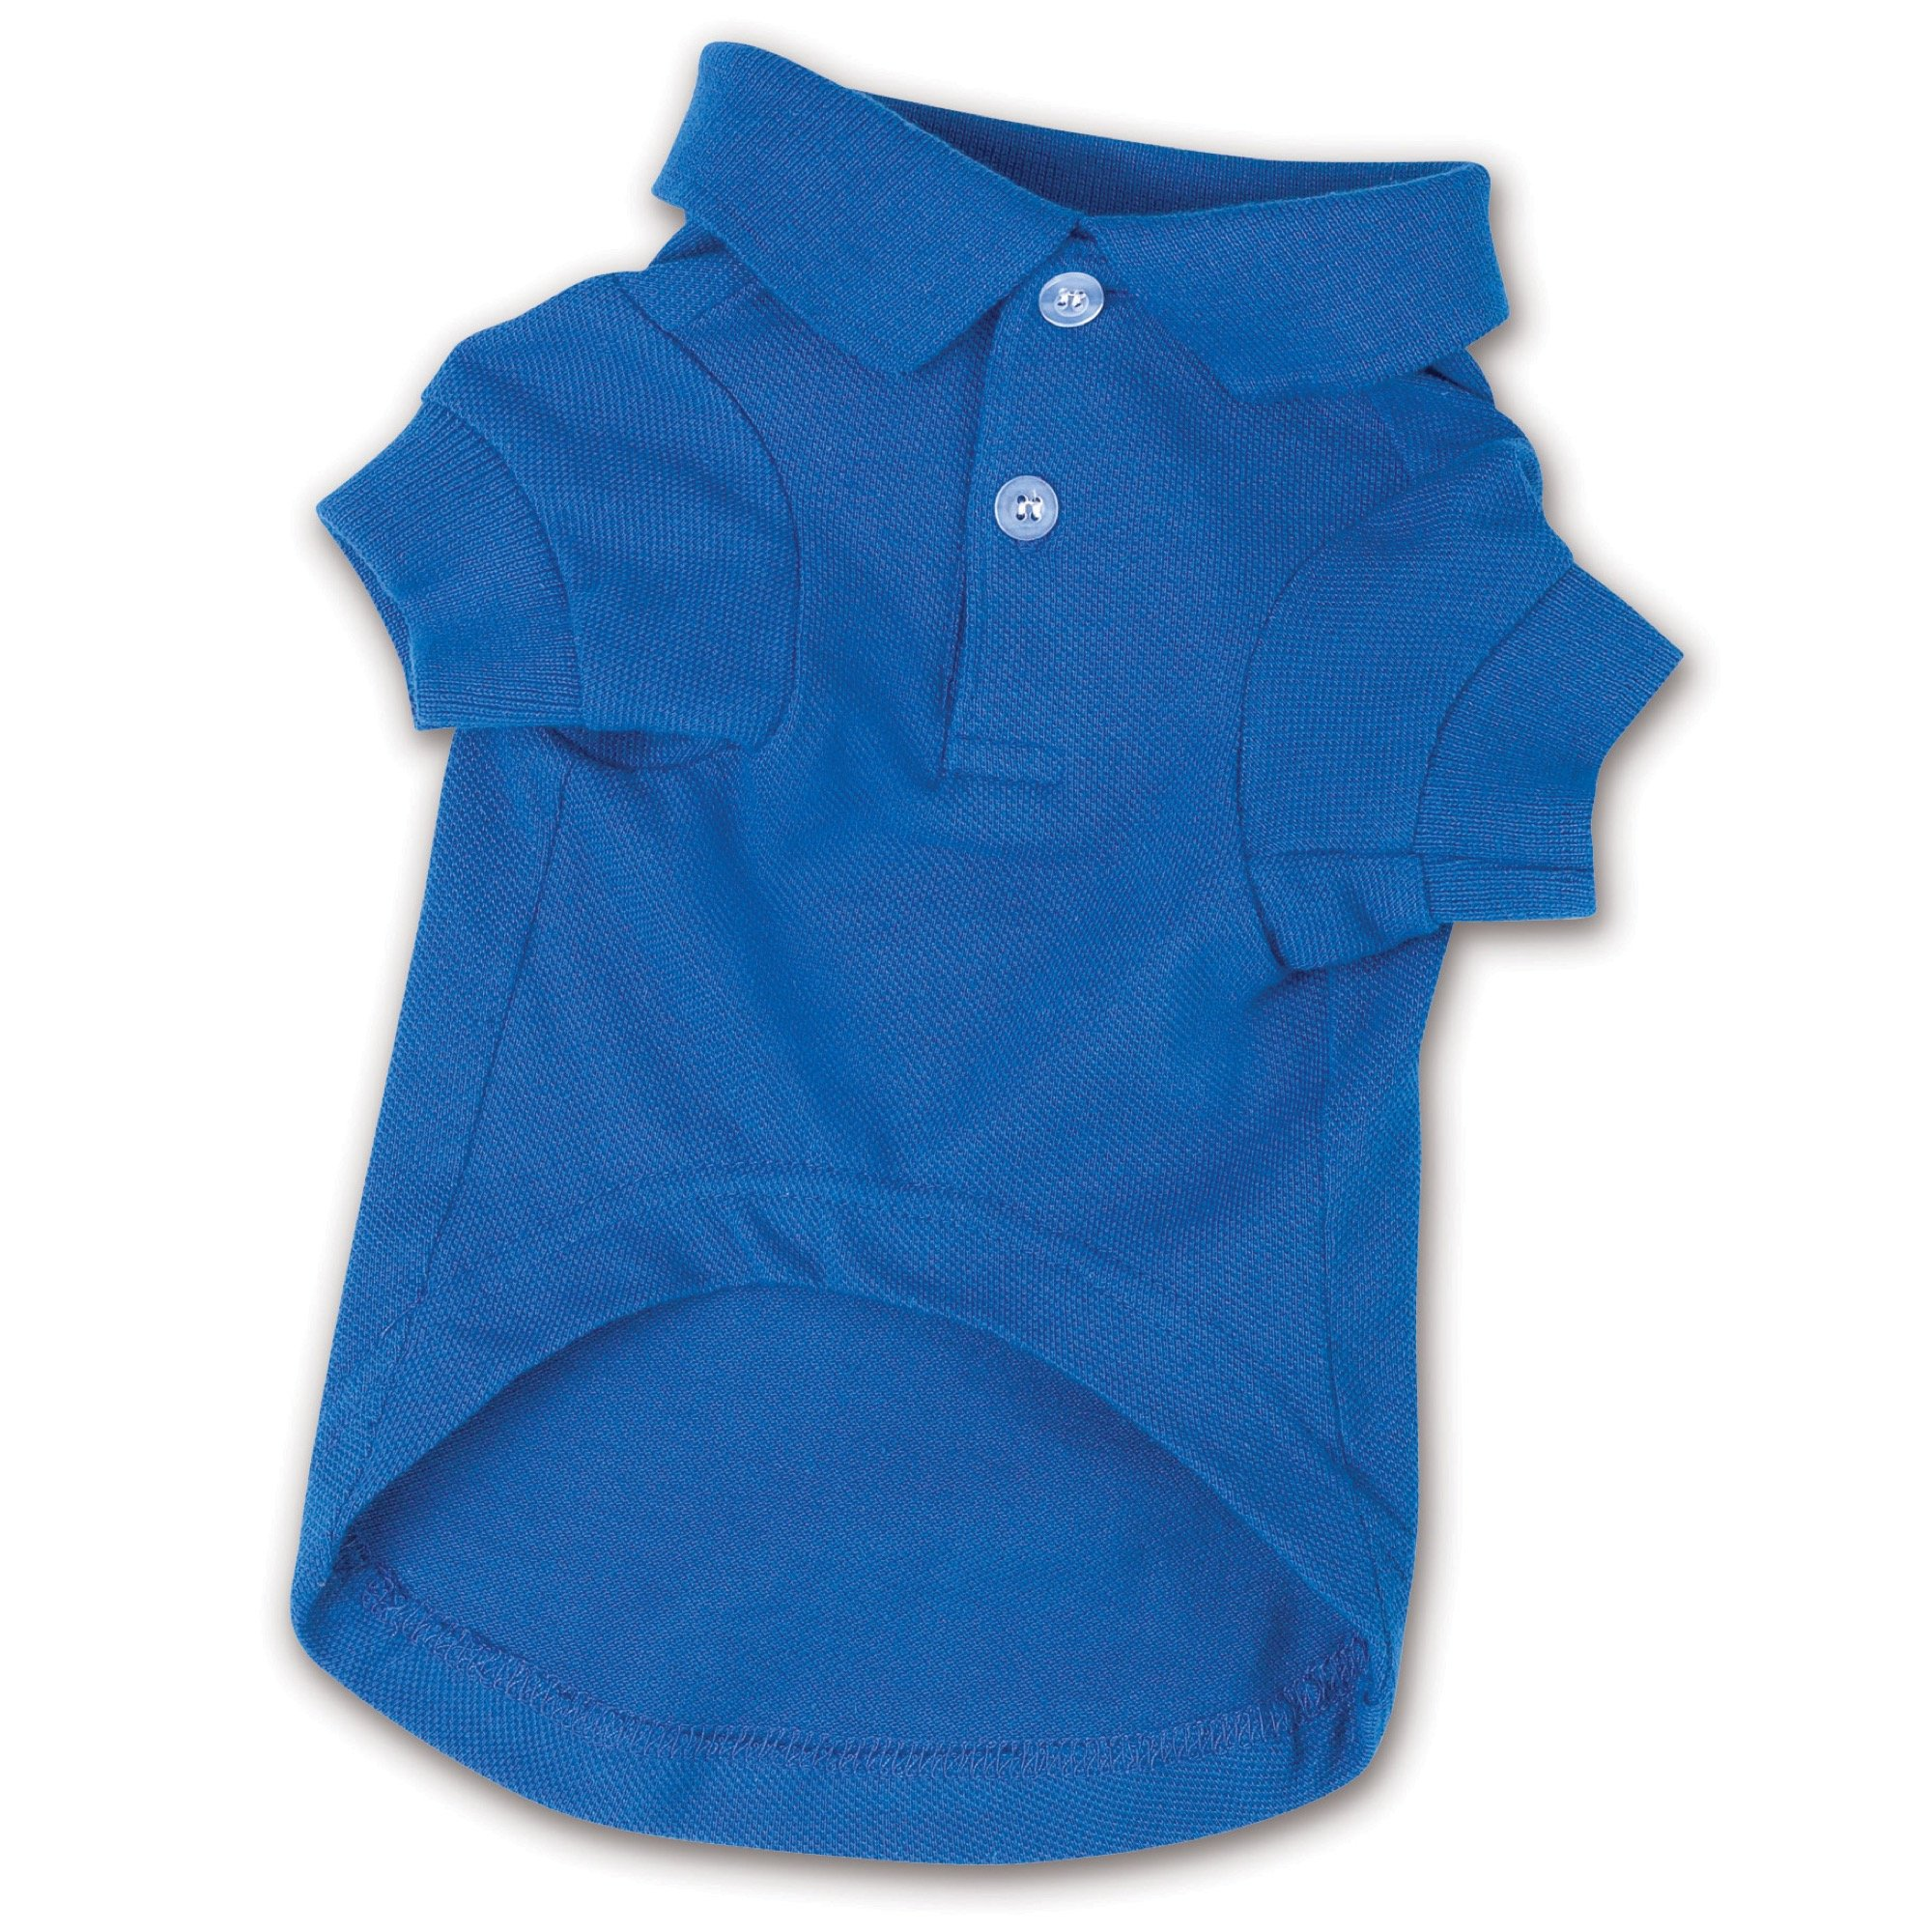 Zack & Zoey Cotton Polo Shirt for Dogs, 12'' Small, Nautical Blue